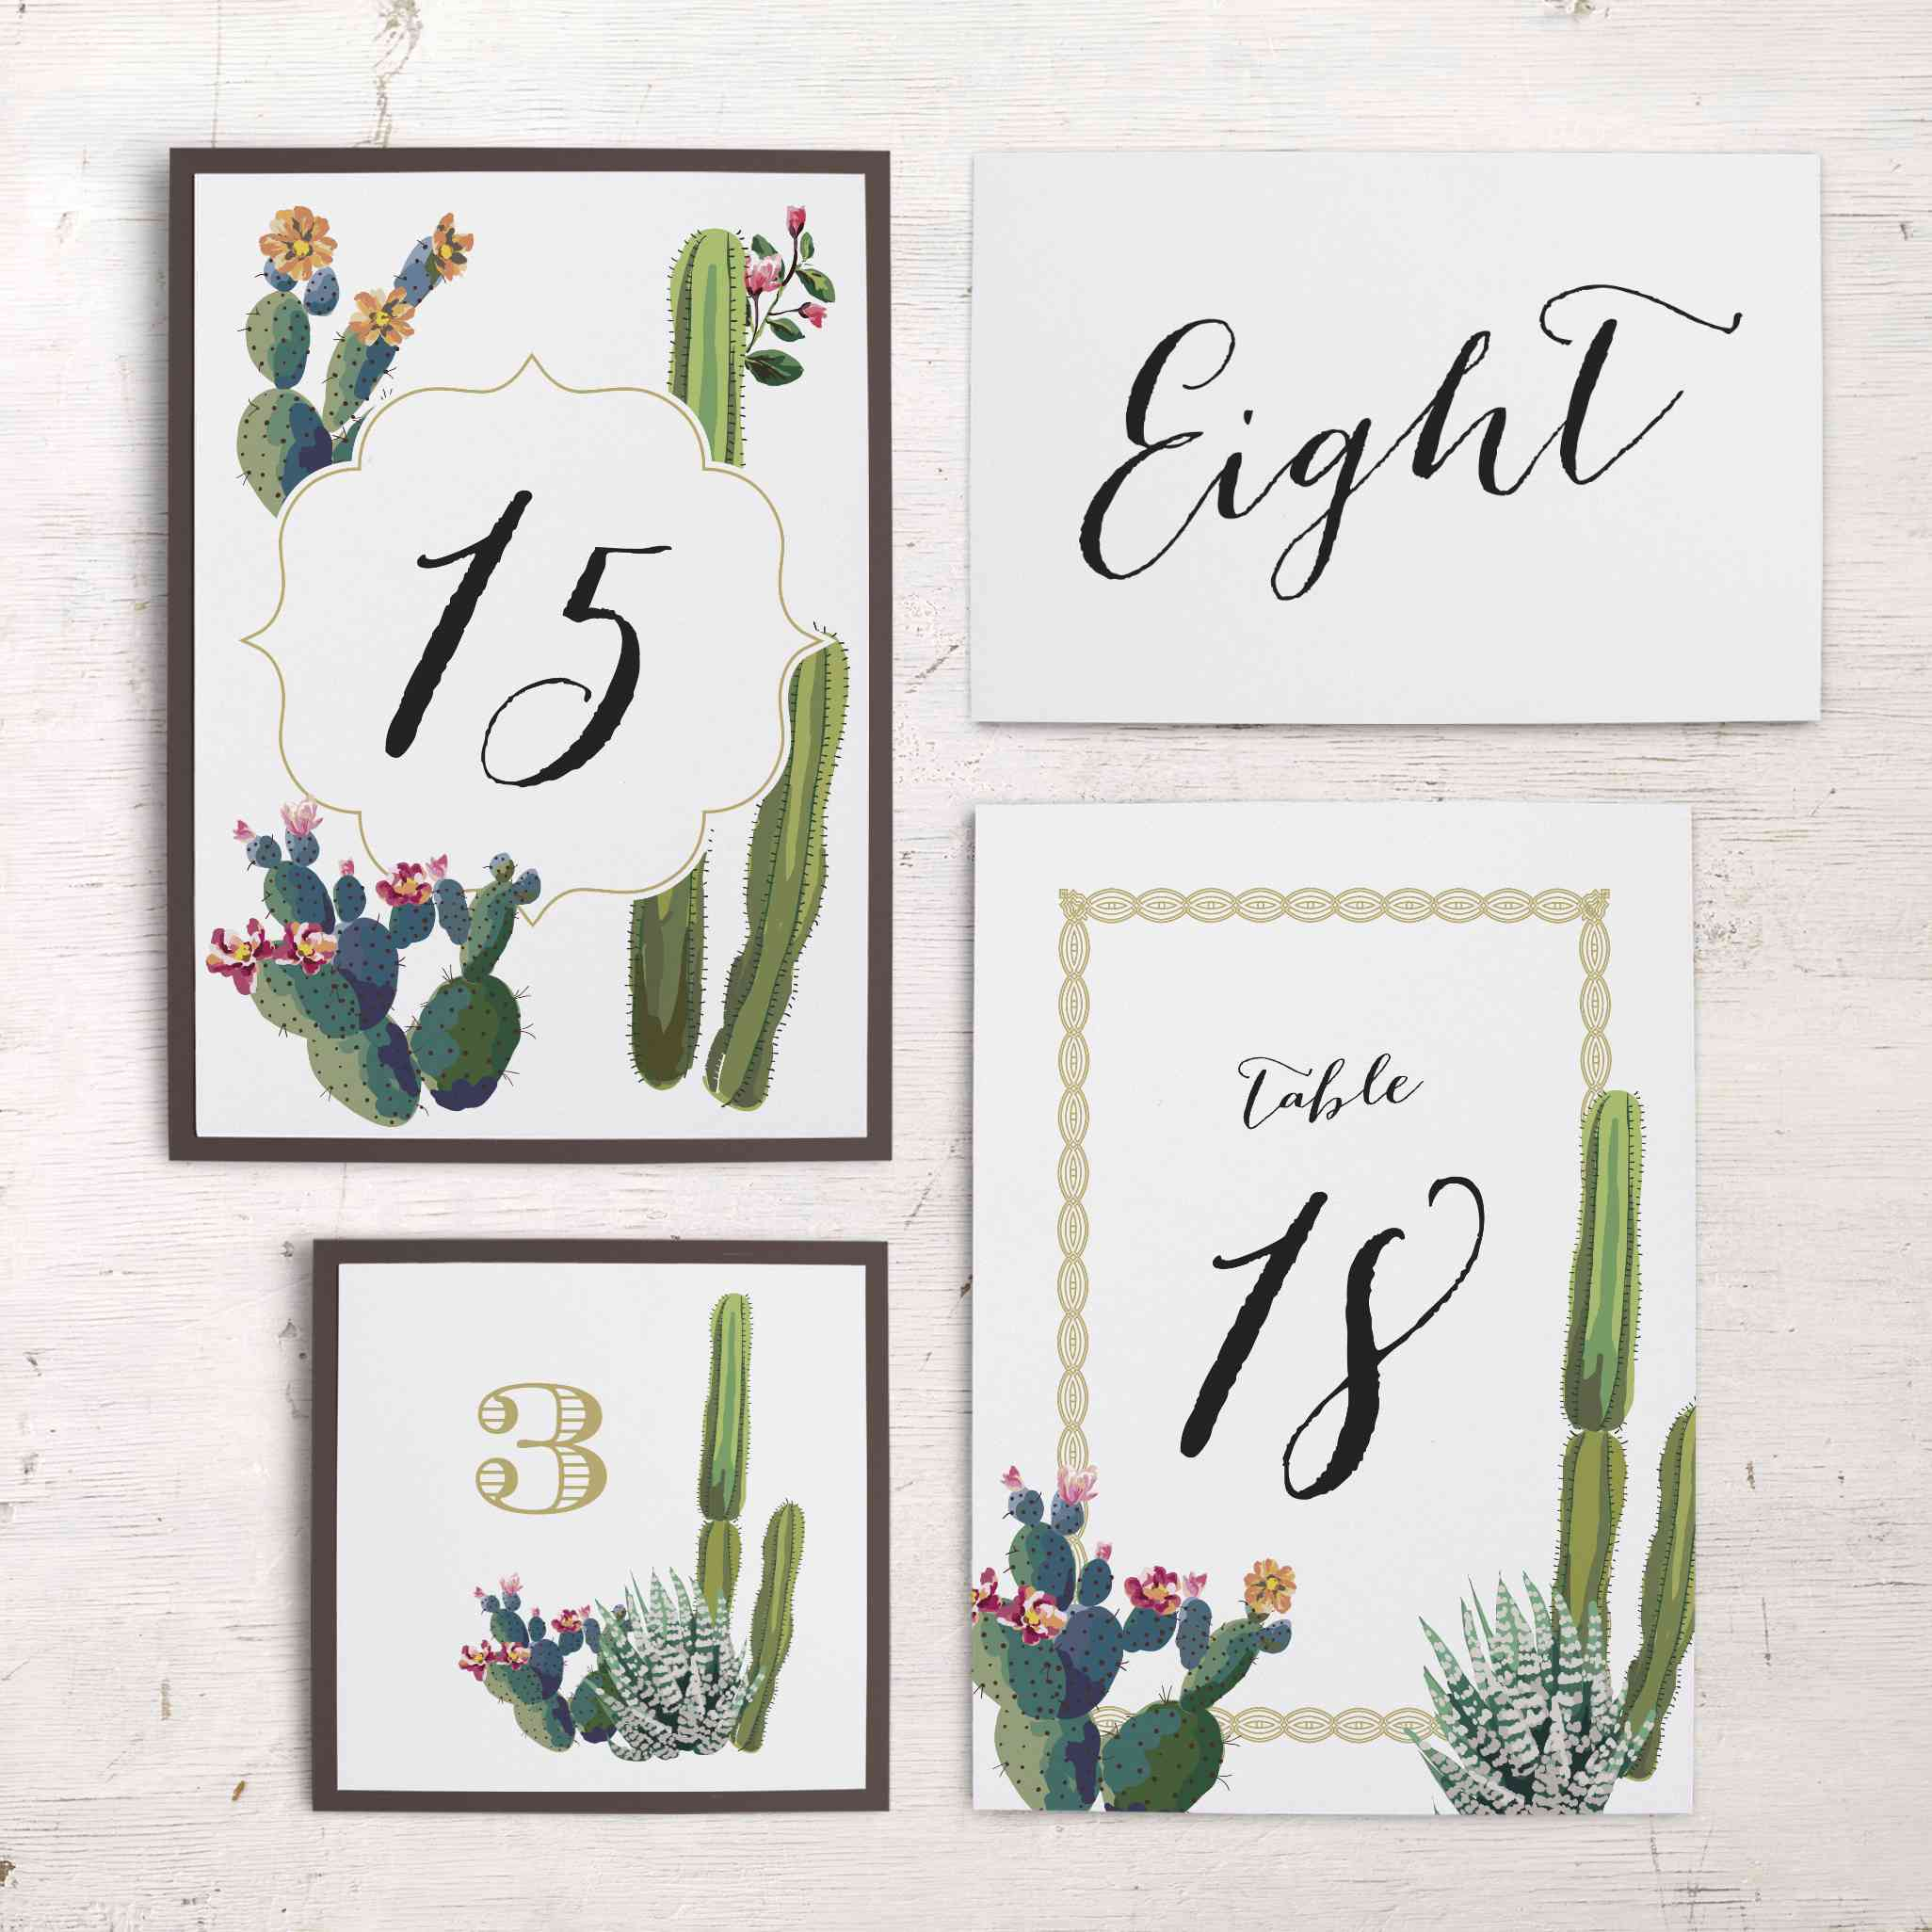 Cactus Table Number from Beacon Lane